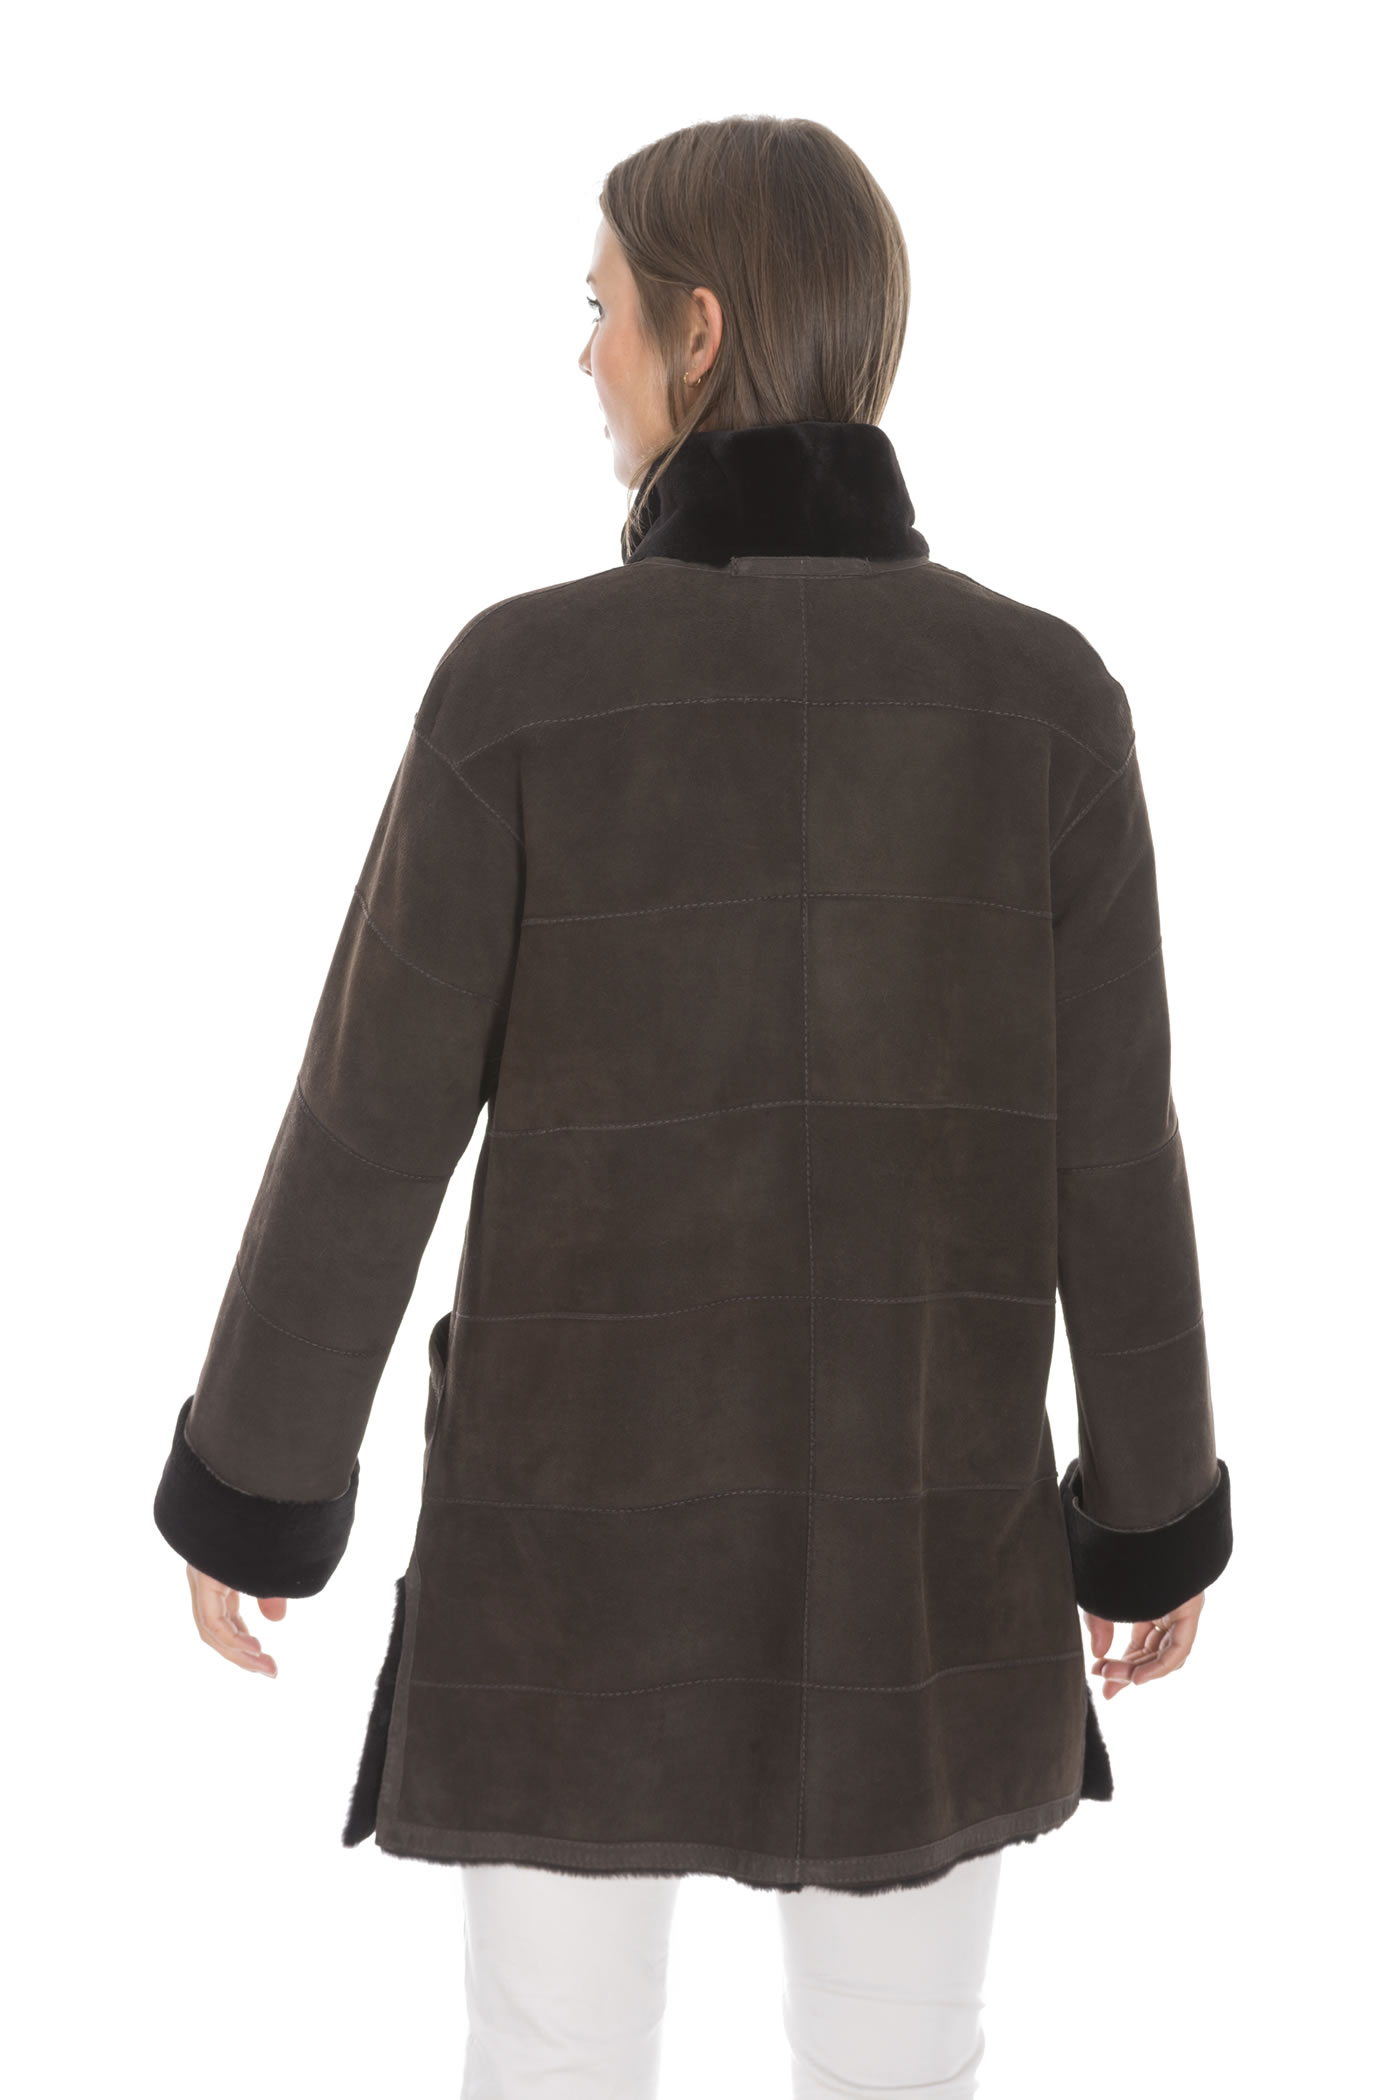 info for 4b3ec 32dbc Casual suede mink jacket with stand-up collar